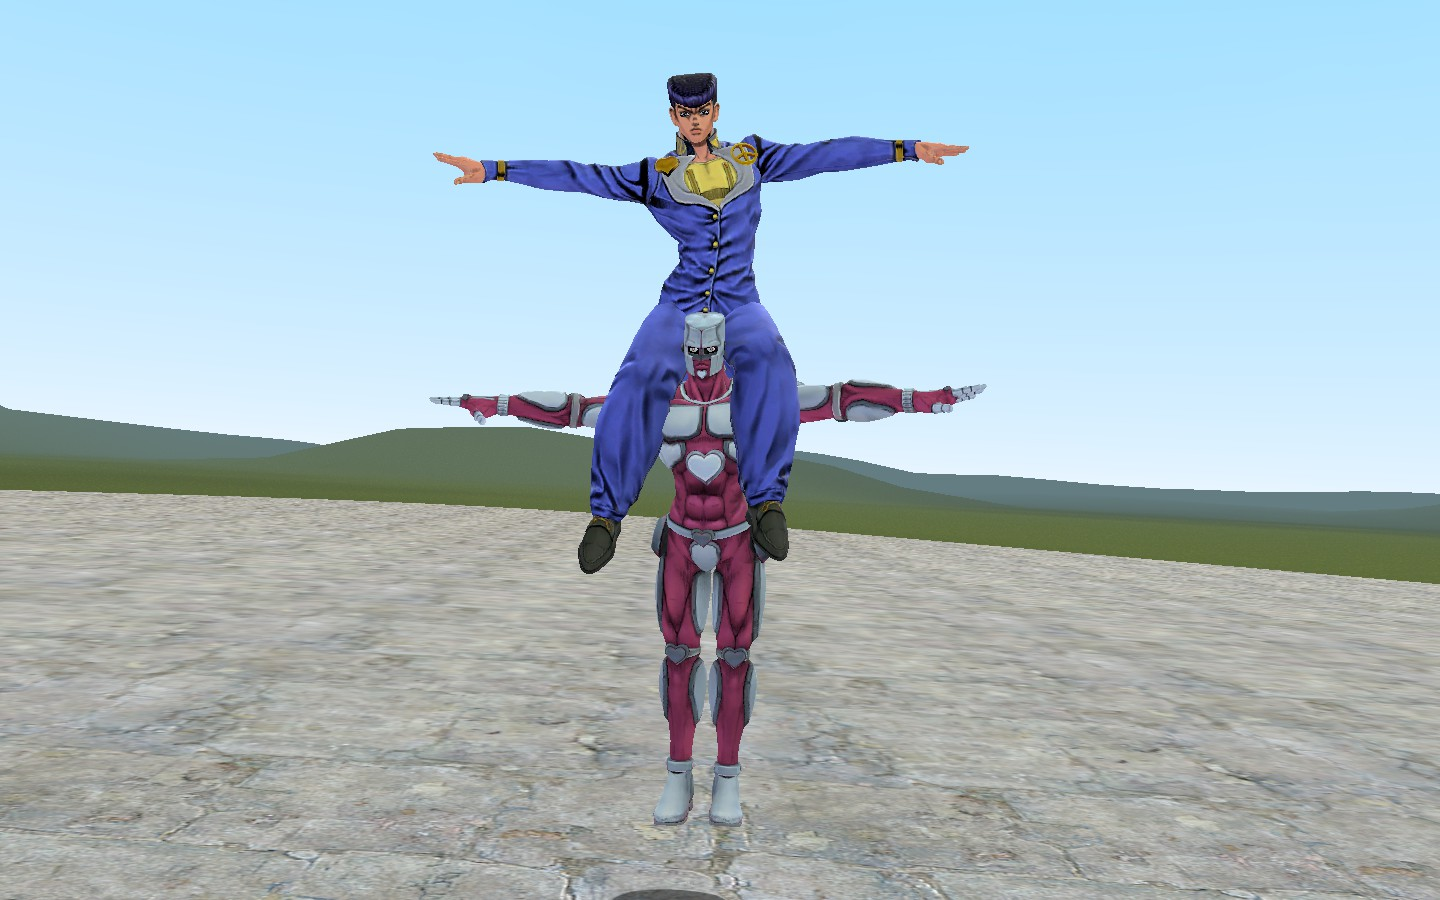 Steam Community Screenshot Crazy T Pose And His Stand User Josuke T Pose They Aren T Related Josuke higashikata is the protagonist of diamond is unbreakable and the fourth jojo of the jojo's bizarre adventure series. crazy t pose and his stand user josuke